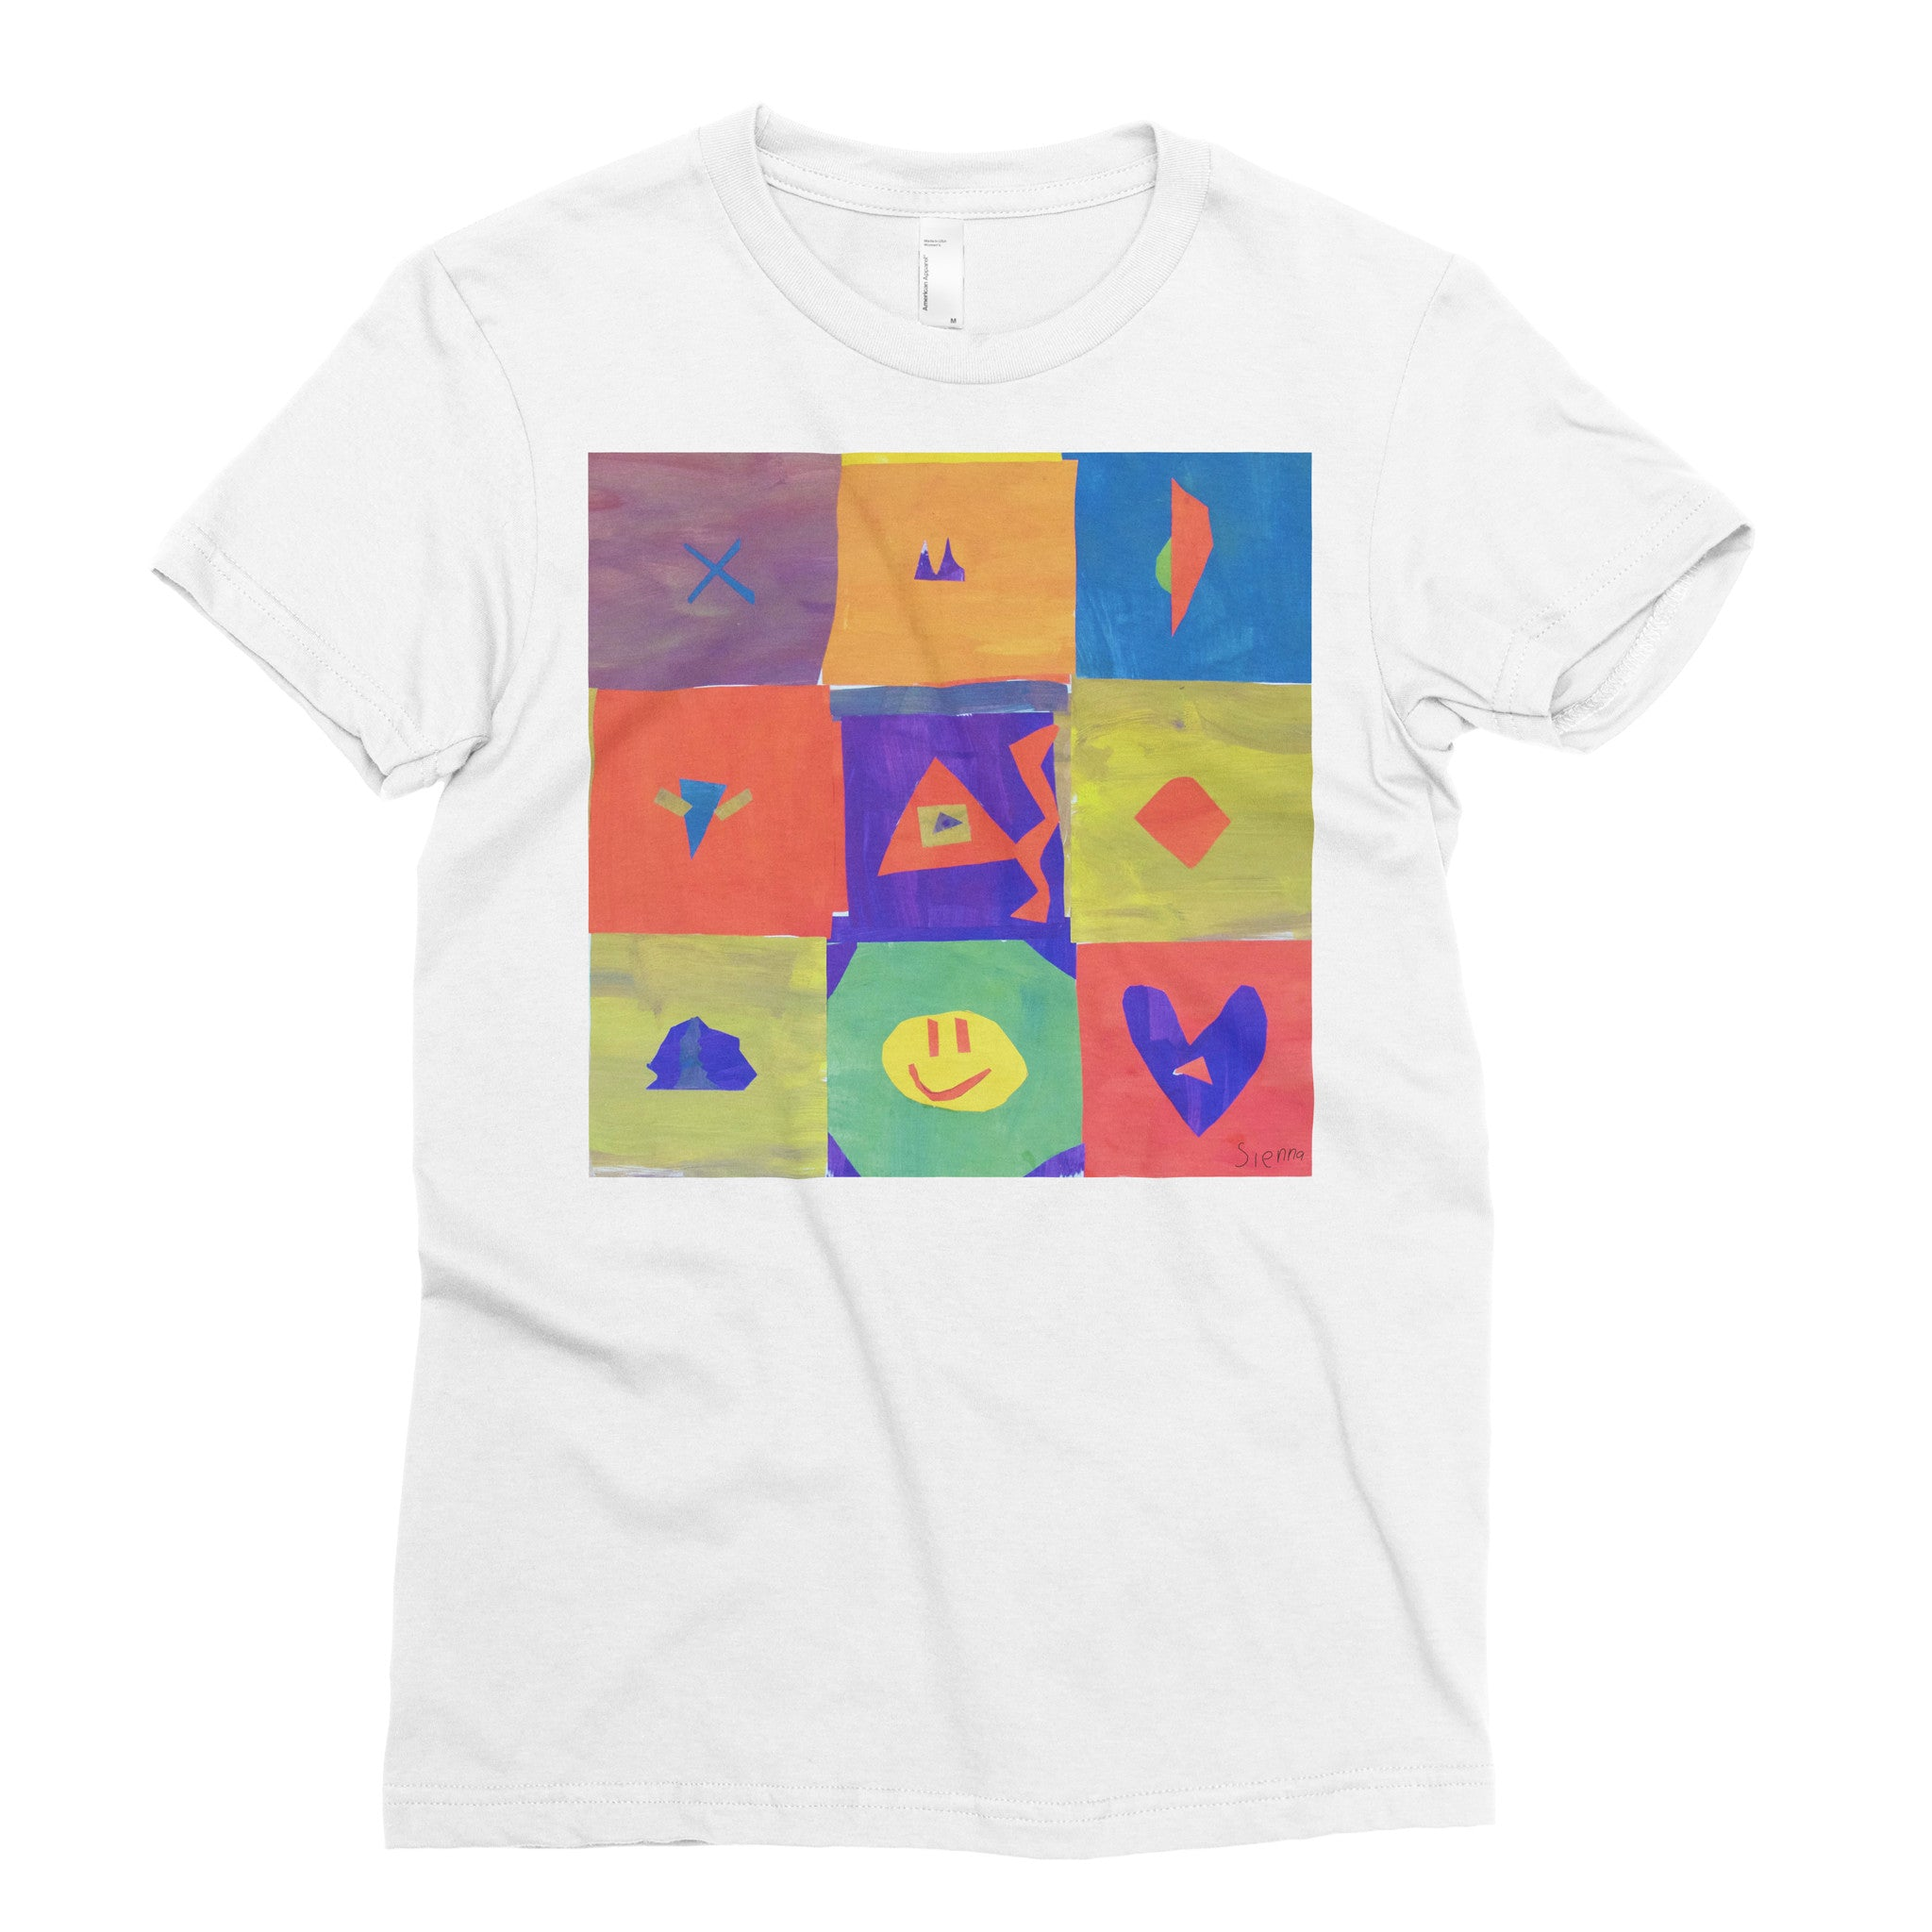 Sienna, 4th grade - Adult T-shirt - Rightside Shirts - 1